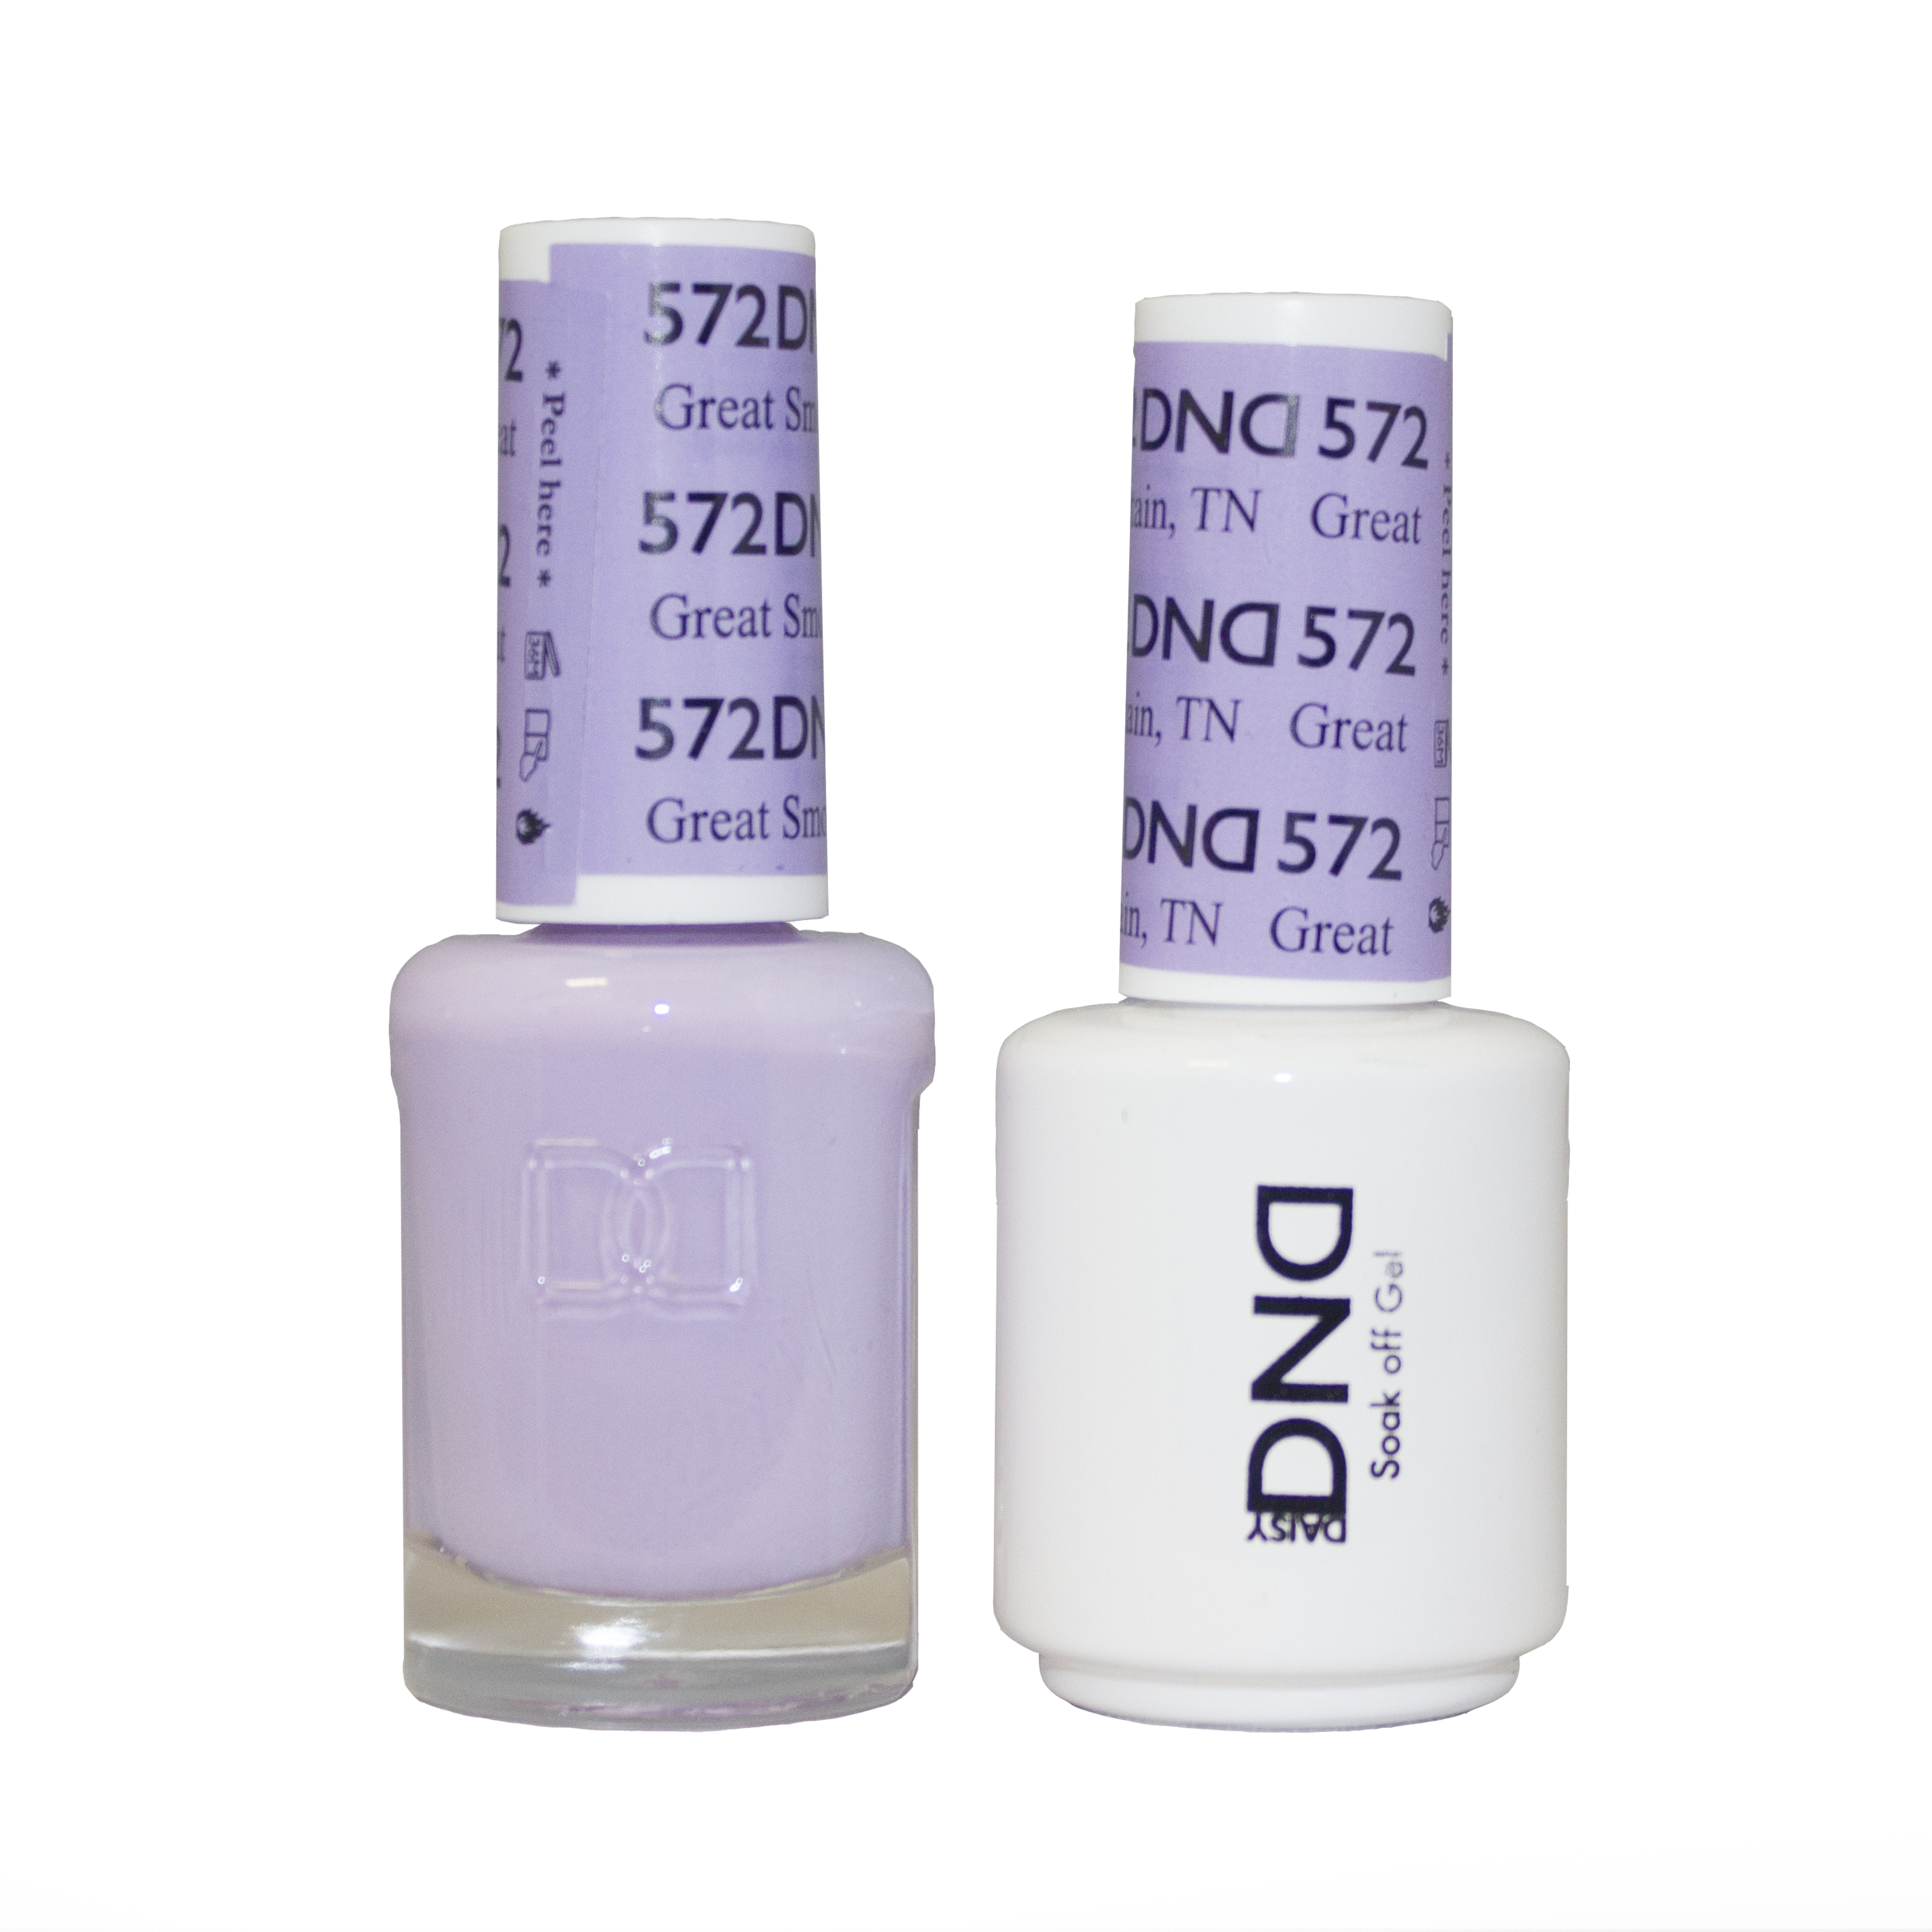 DND – Great Mountain, Tn 572 – Hollywood Nails Supply UK